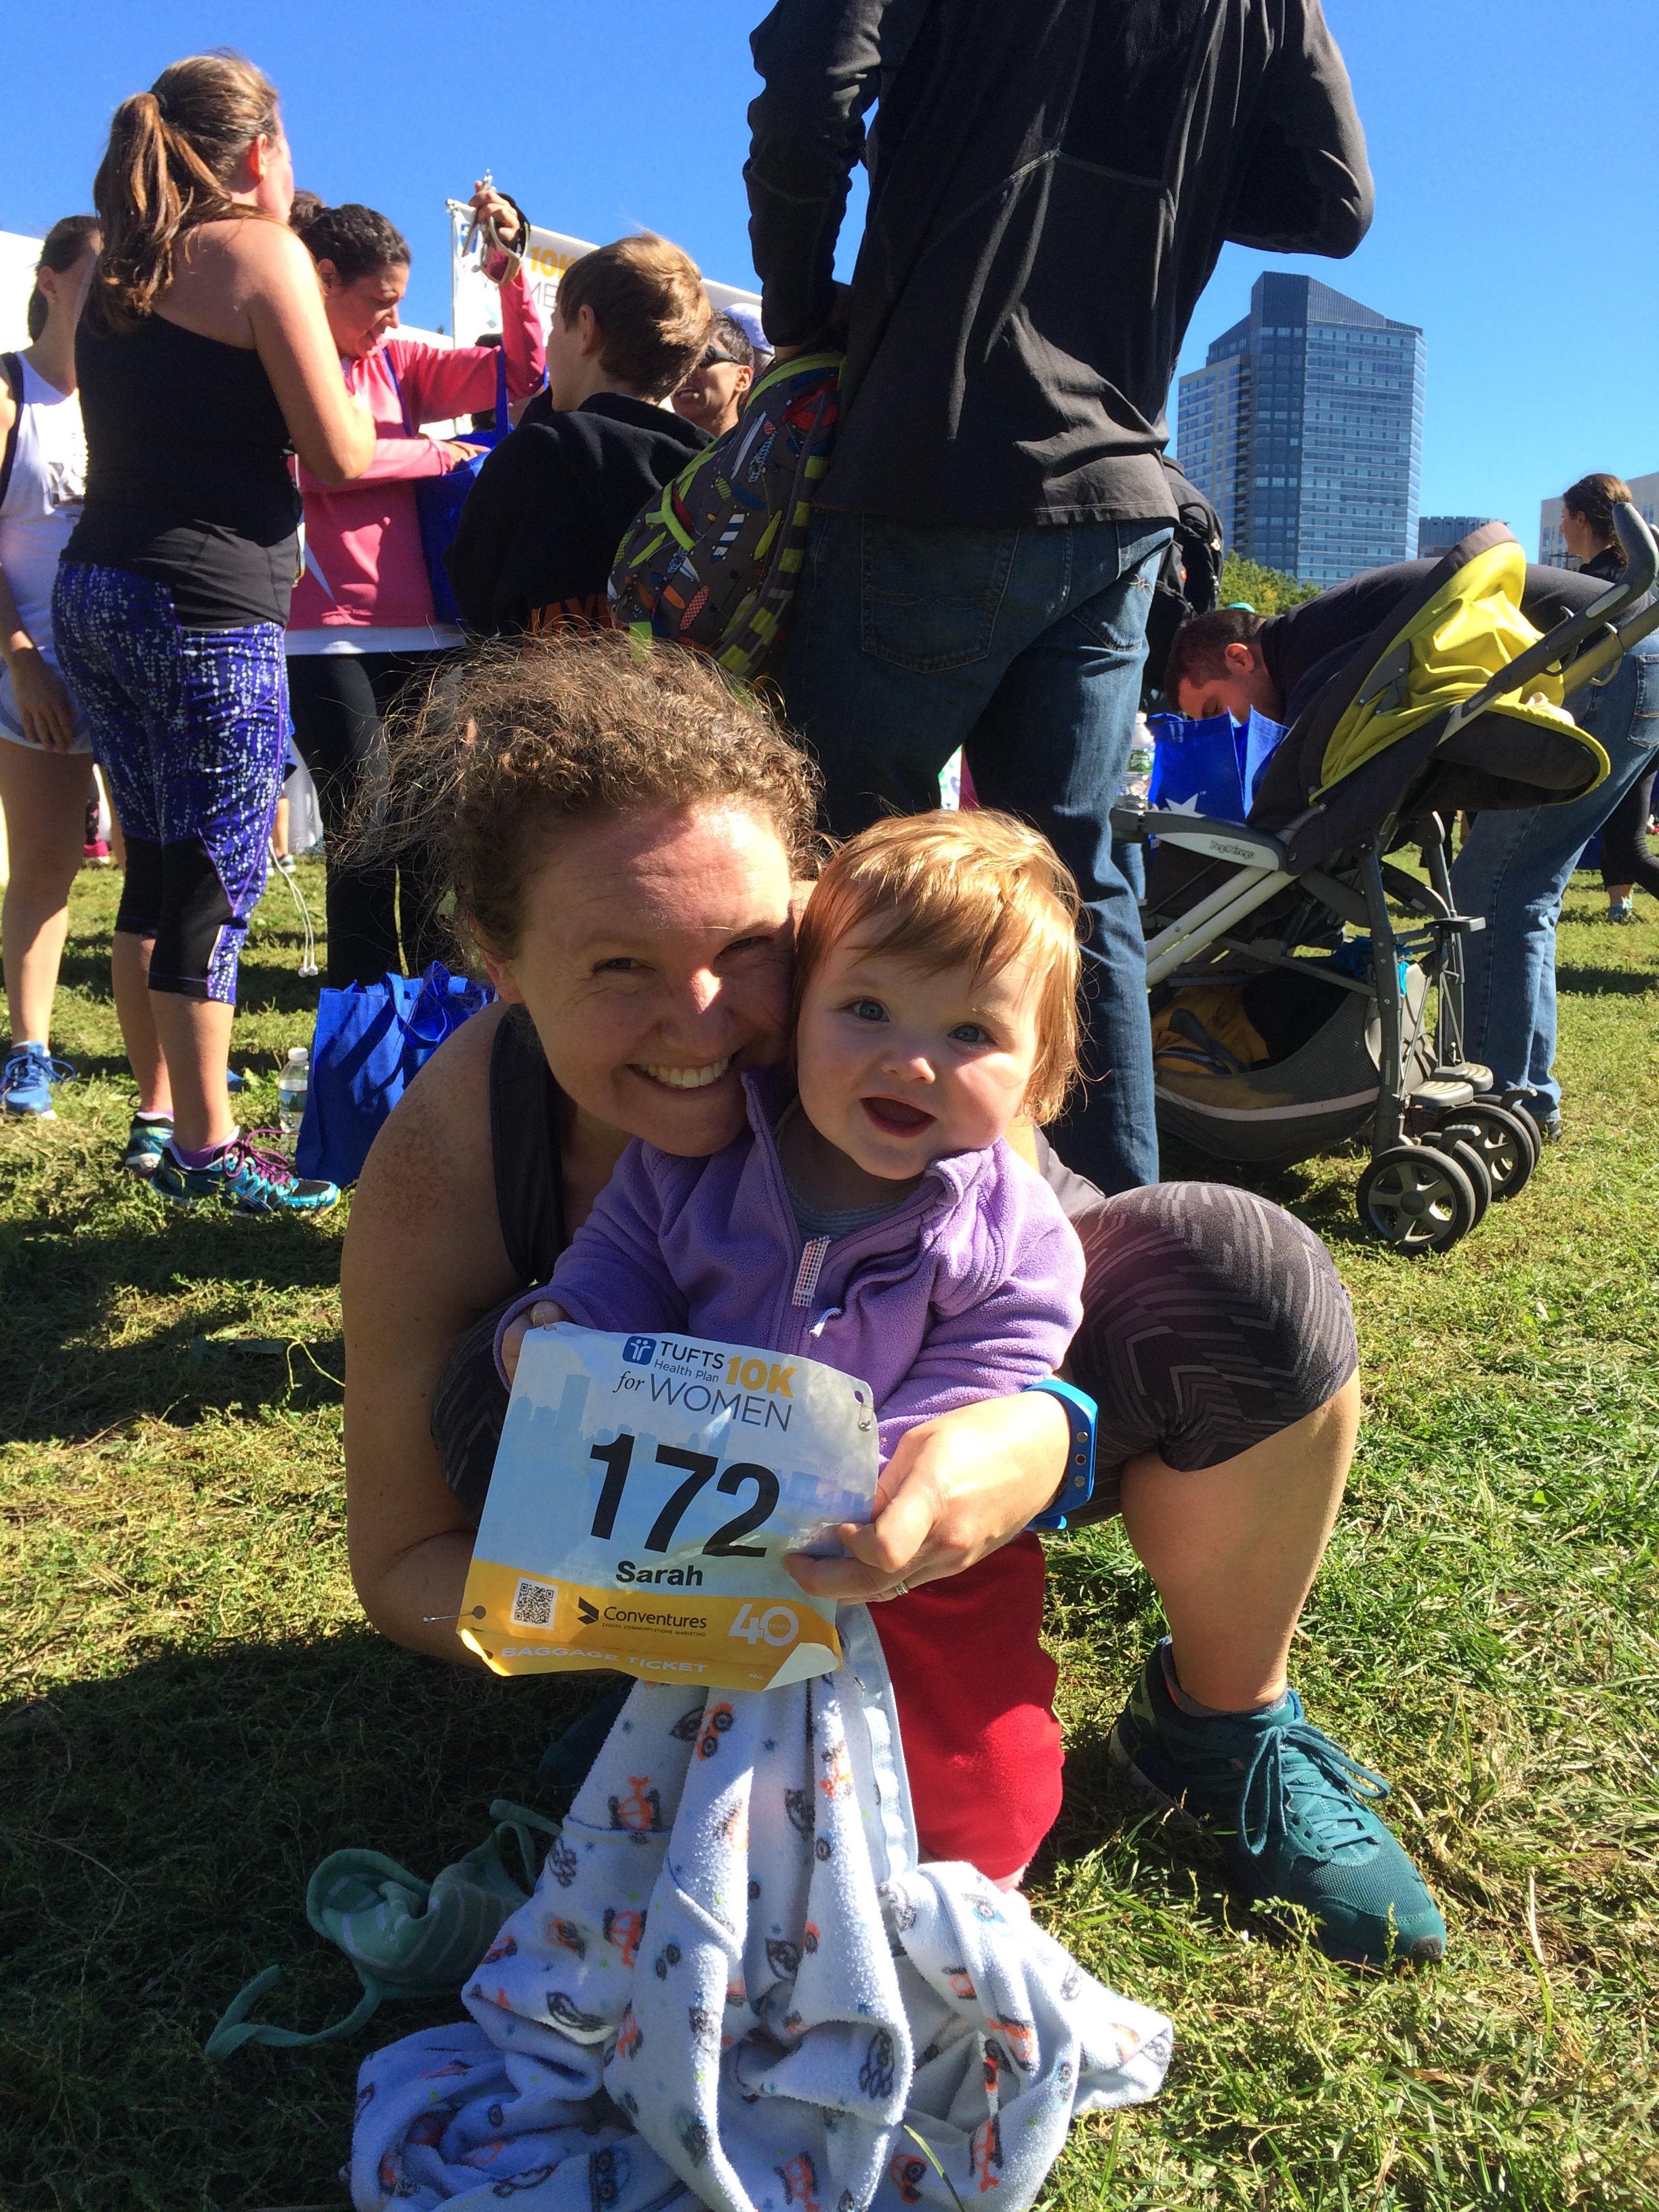 Me and my daughter Rosalind, age 13 months, on October 10th 2016. I hope this race stays in our family for many more generations.